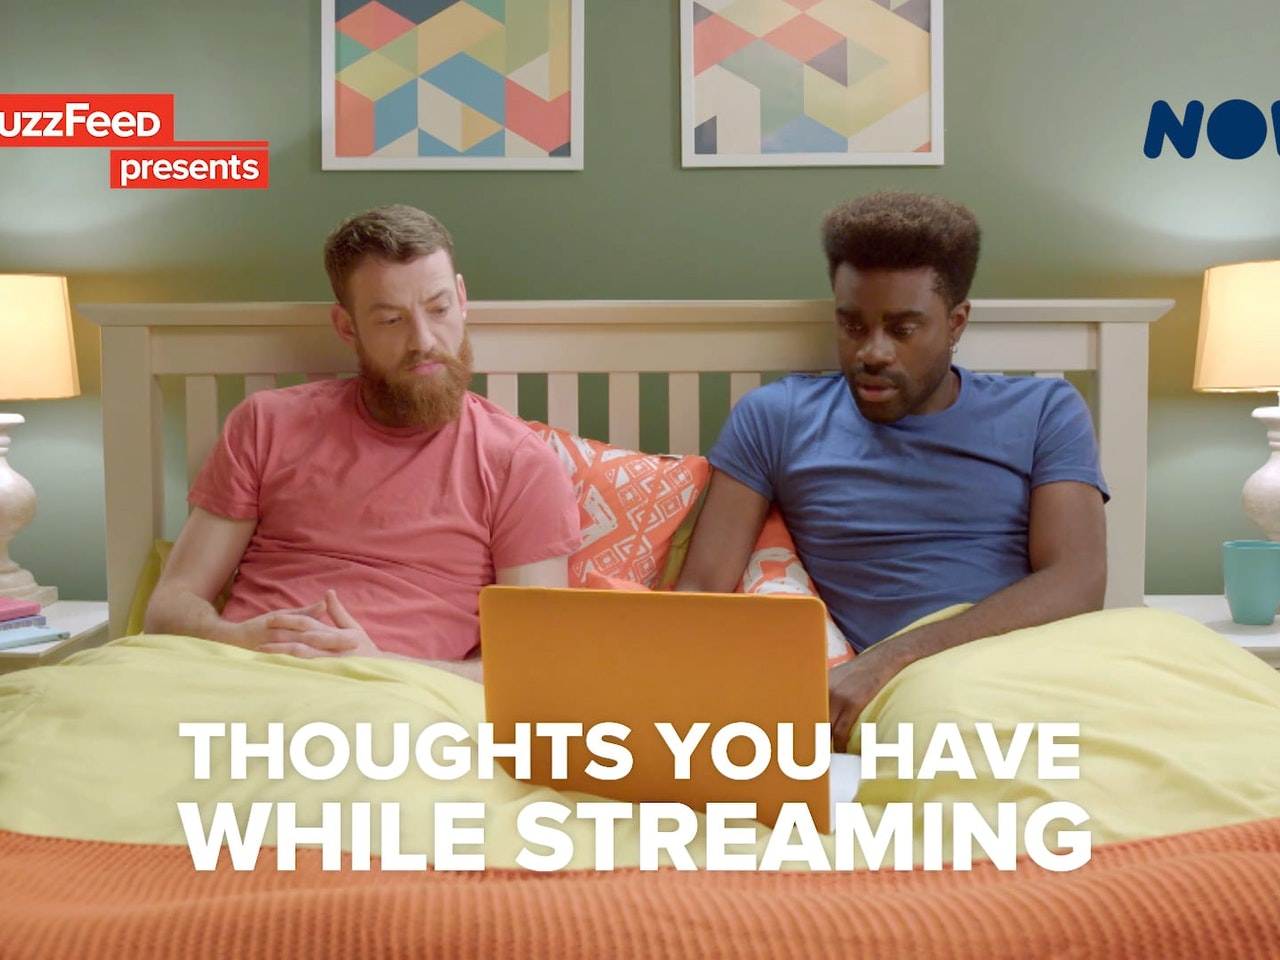 BuzzFeed x NOW TV - When You Can't Decide What To Watch